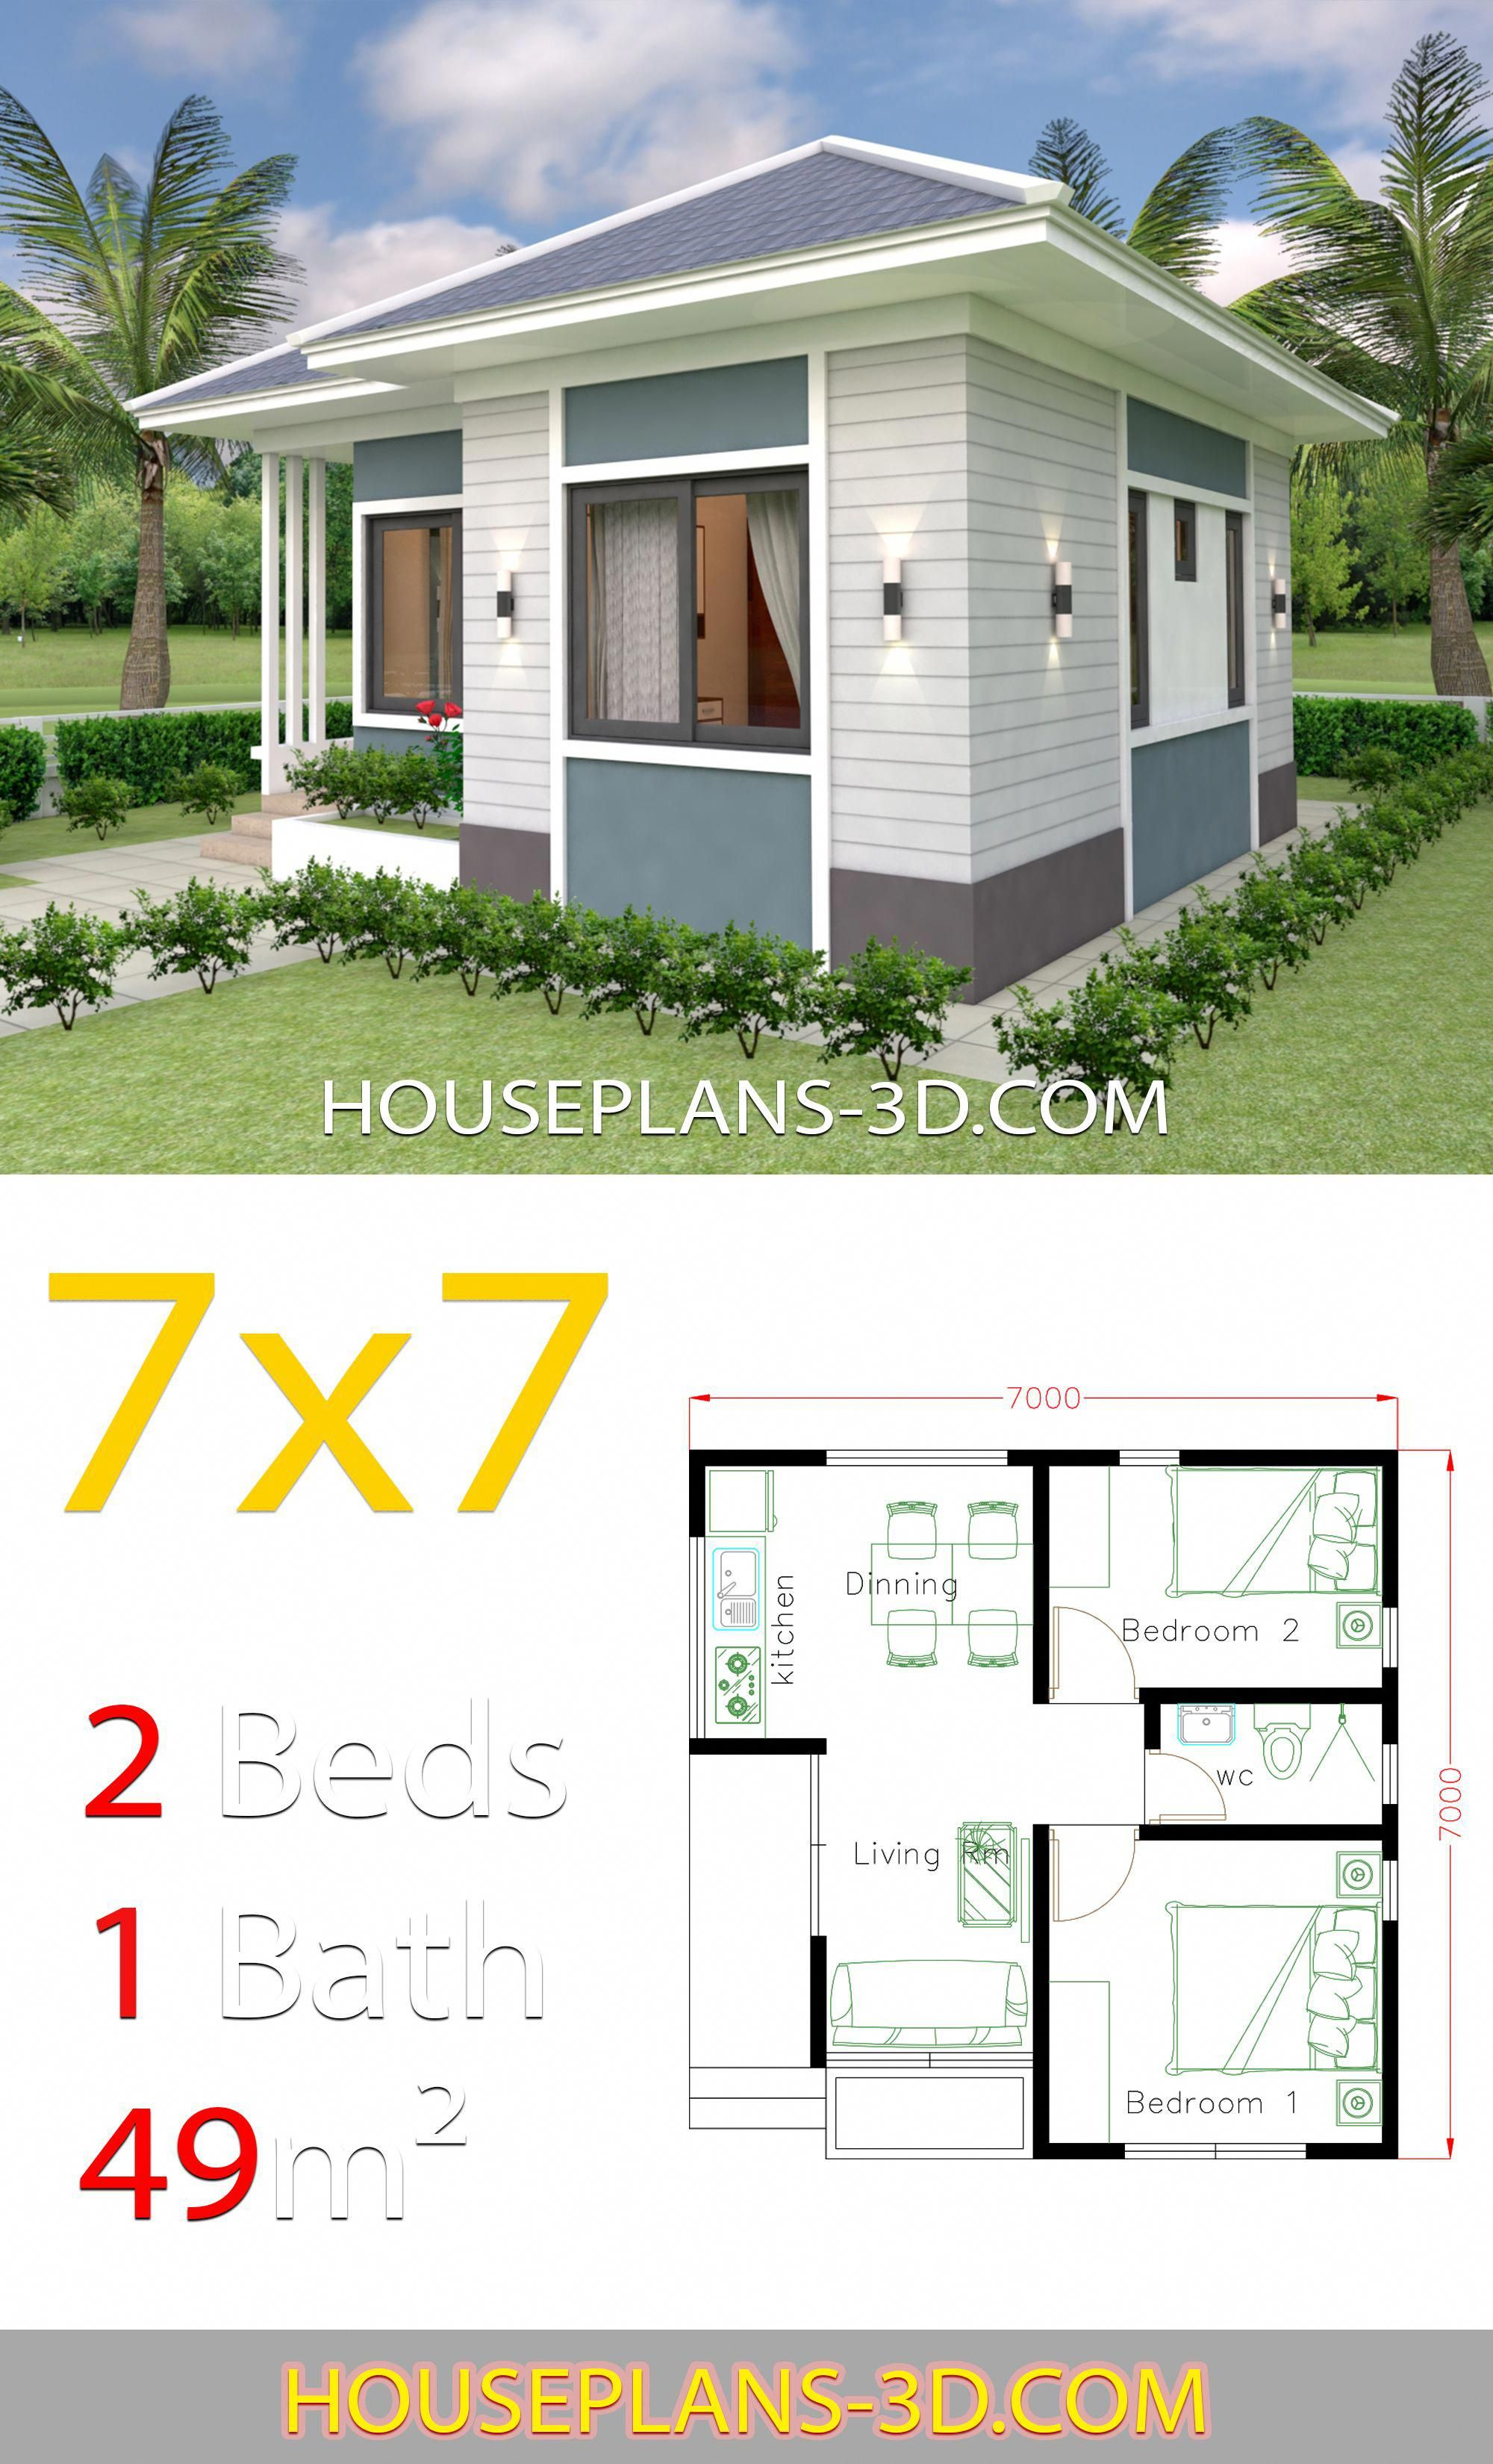 Take A Look At This Important Graphics In Order To Visit Today Relevant Information On Home Base In 2020 Small House Design Plans Small House Layout Small House Design